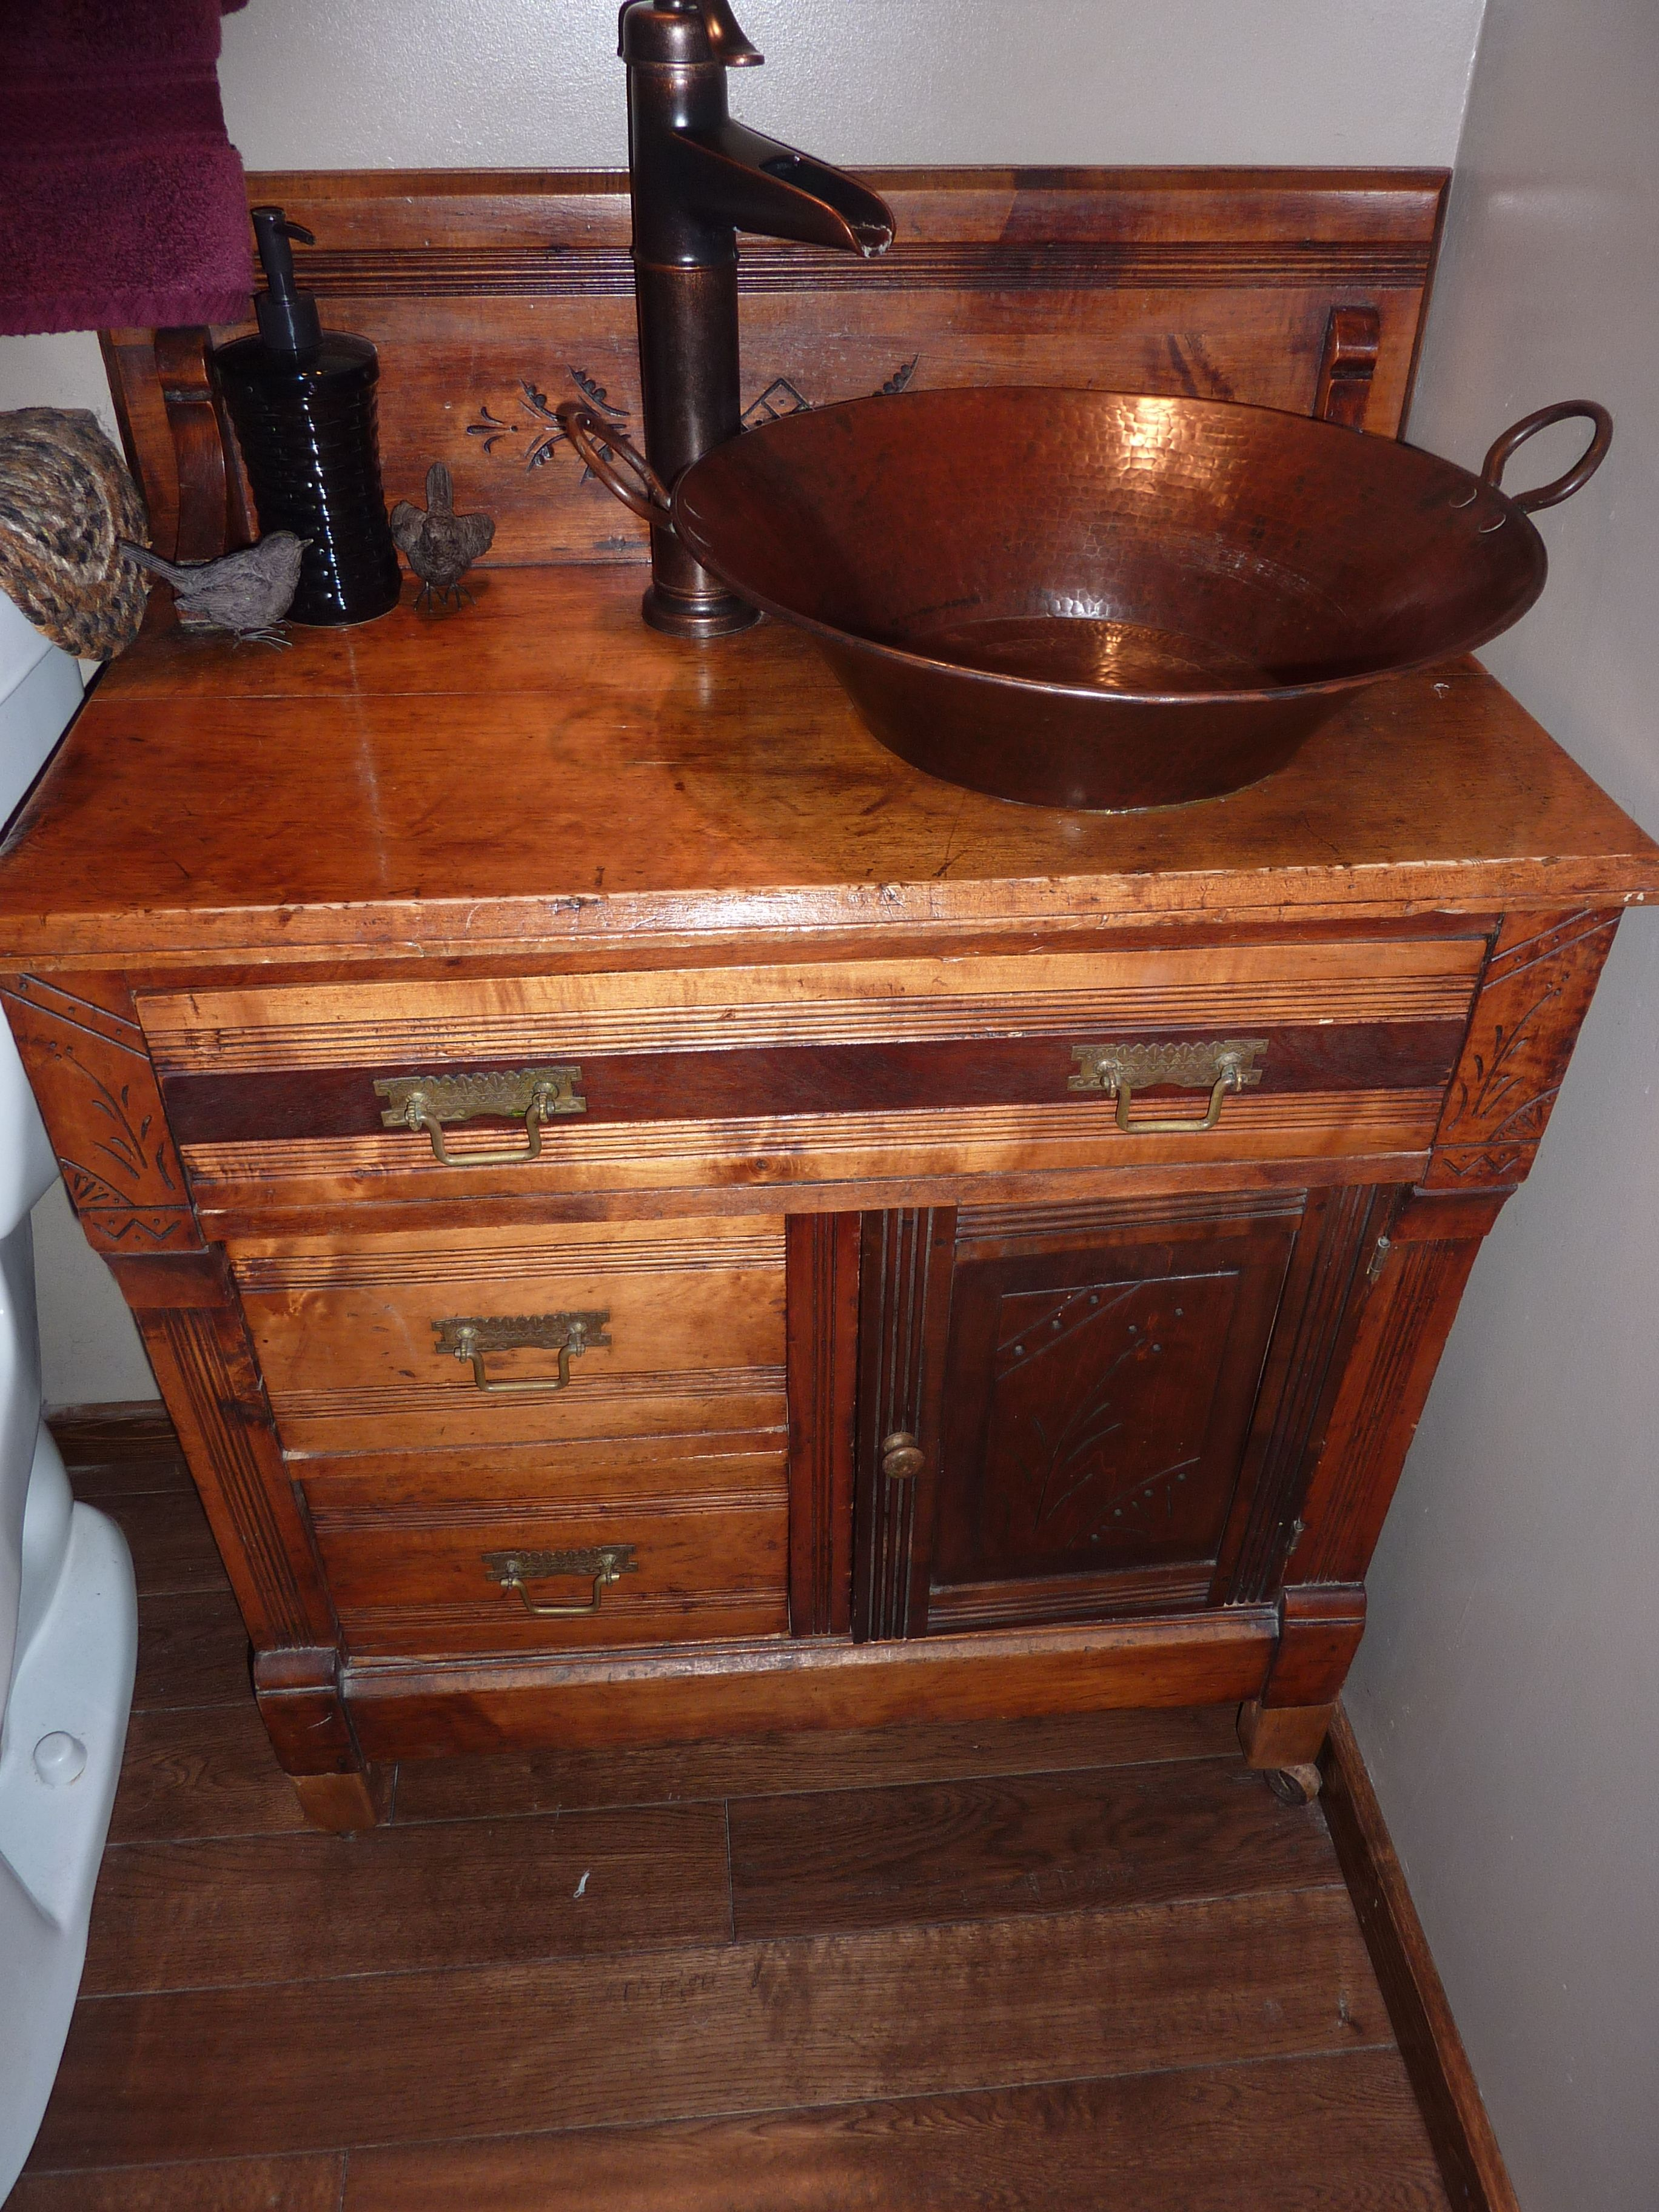 A 100 Flea Market Find Turned A Dry Sink Into A Bathroom Vanity